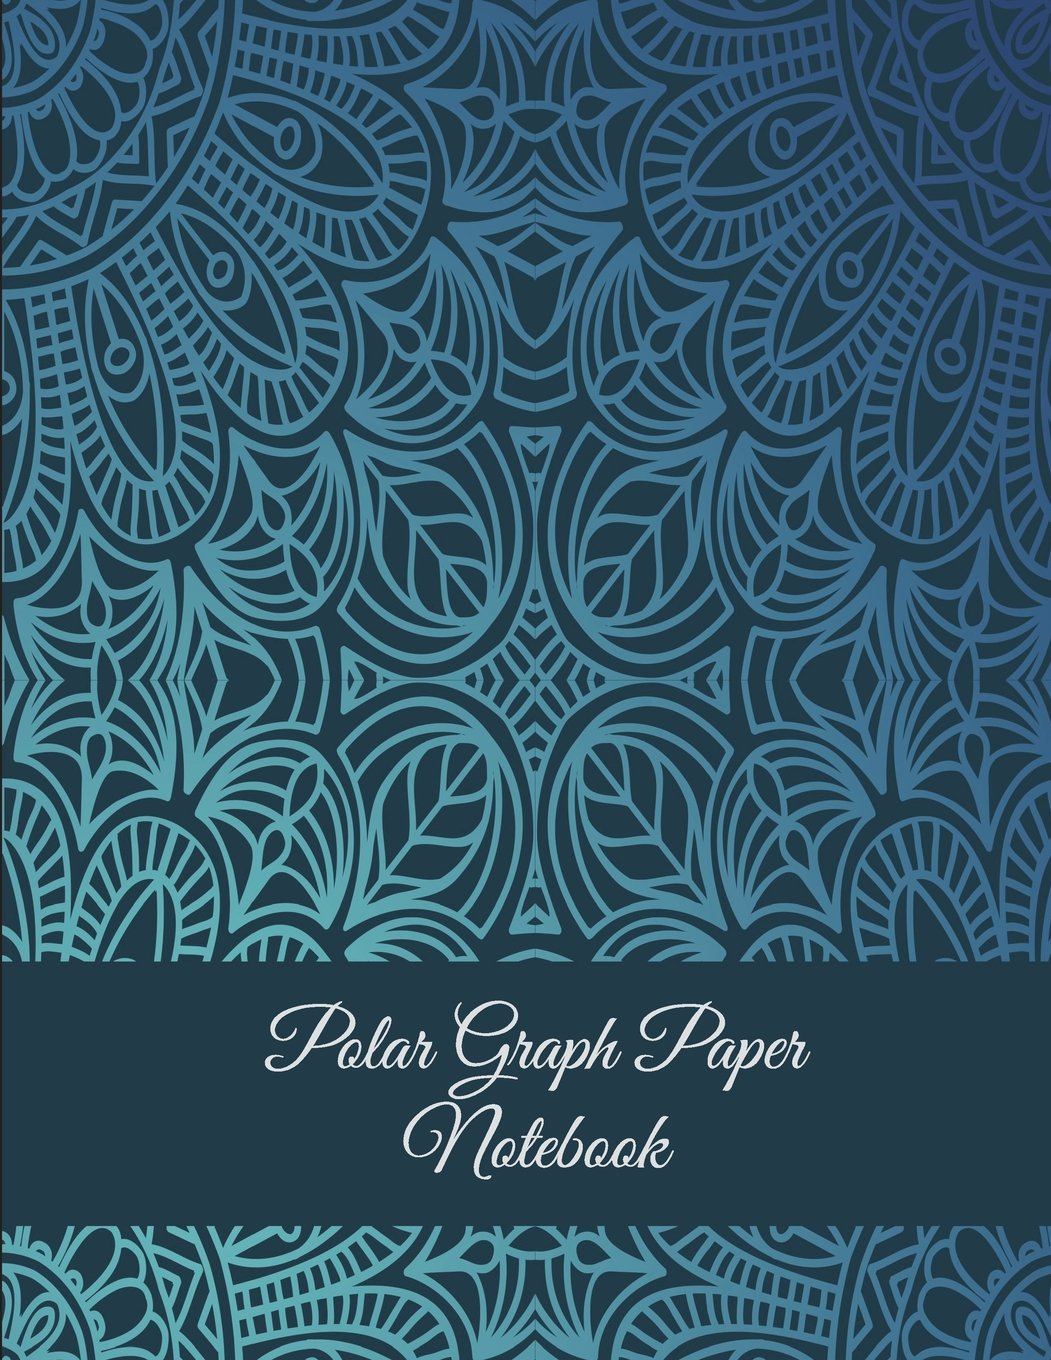 "Polar Graph Paper Notebook: Classic Mandala Blue Color, 5 Degree Polar Coordinates 120 Pages Large Print 8.5"" x 11"" Polar Graph Paper Notebook pdf epub"